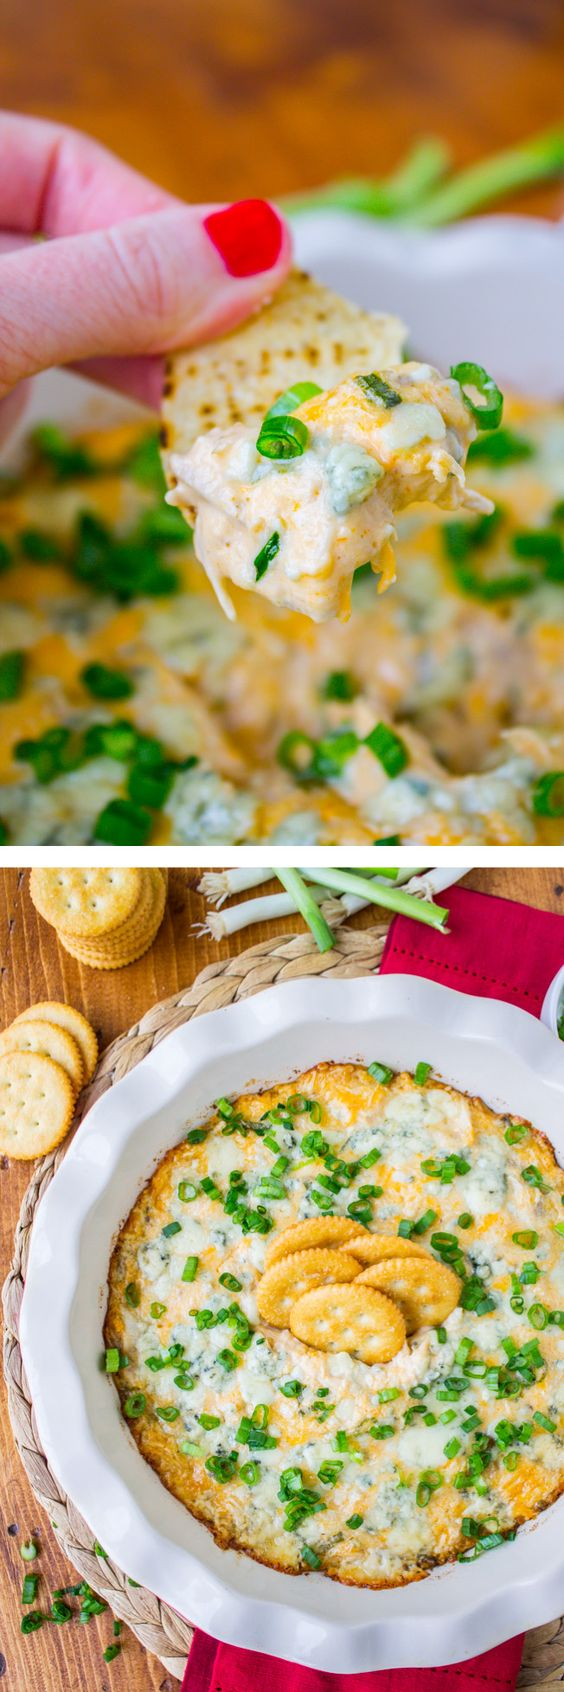 Cheesy Buffalo Chicken Dip from The Food Charlatan // This dip is easy ...